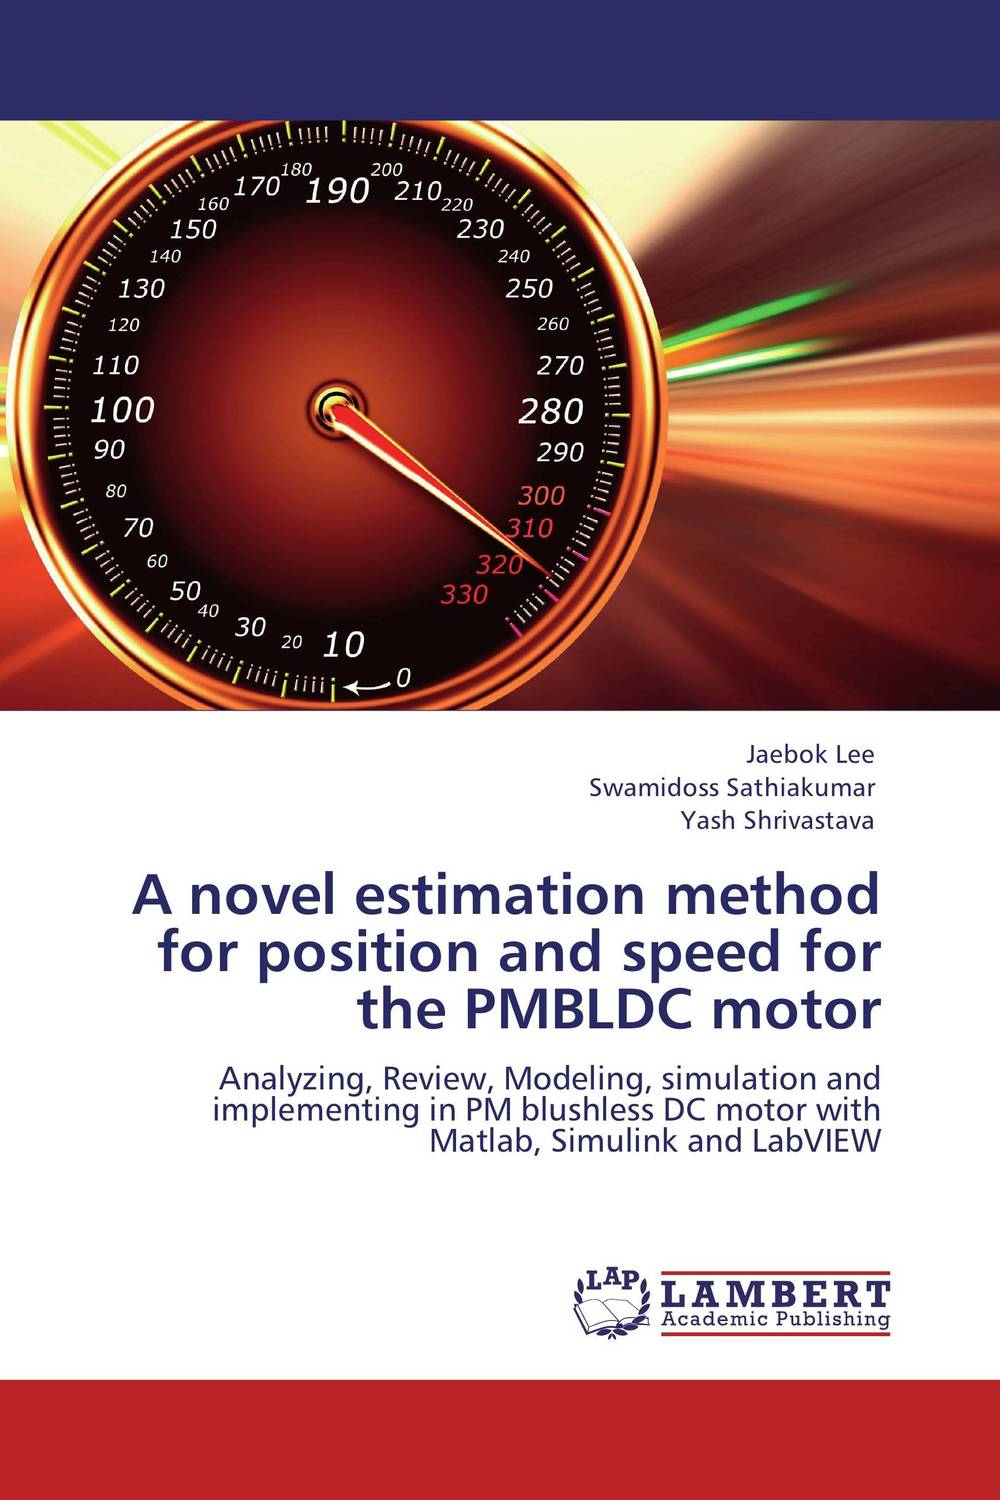 A novel estimation method for position and speed for the PMBLDC motor a novel separation technique using hydrotropes